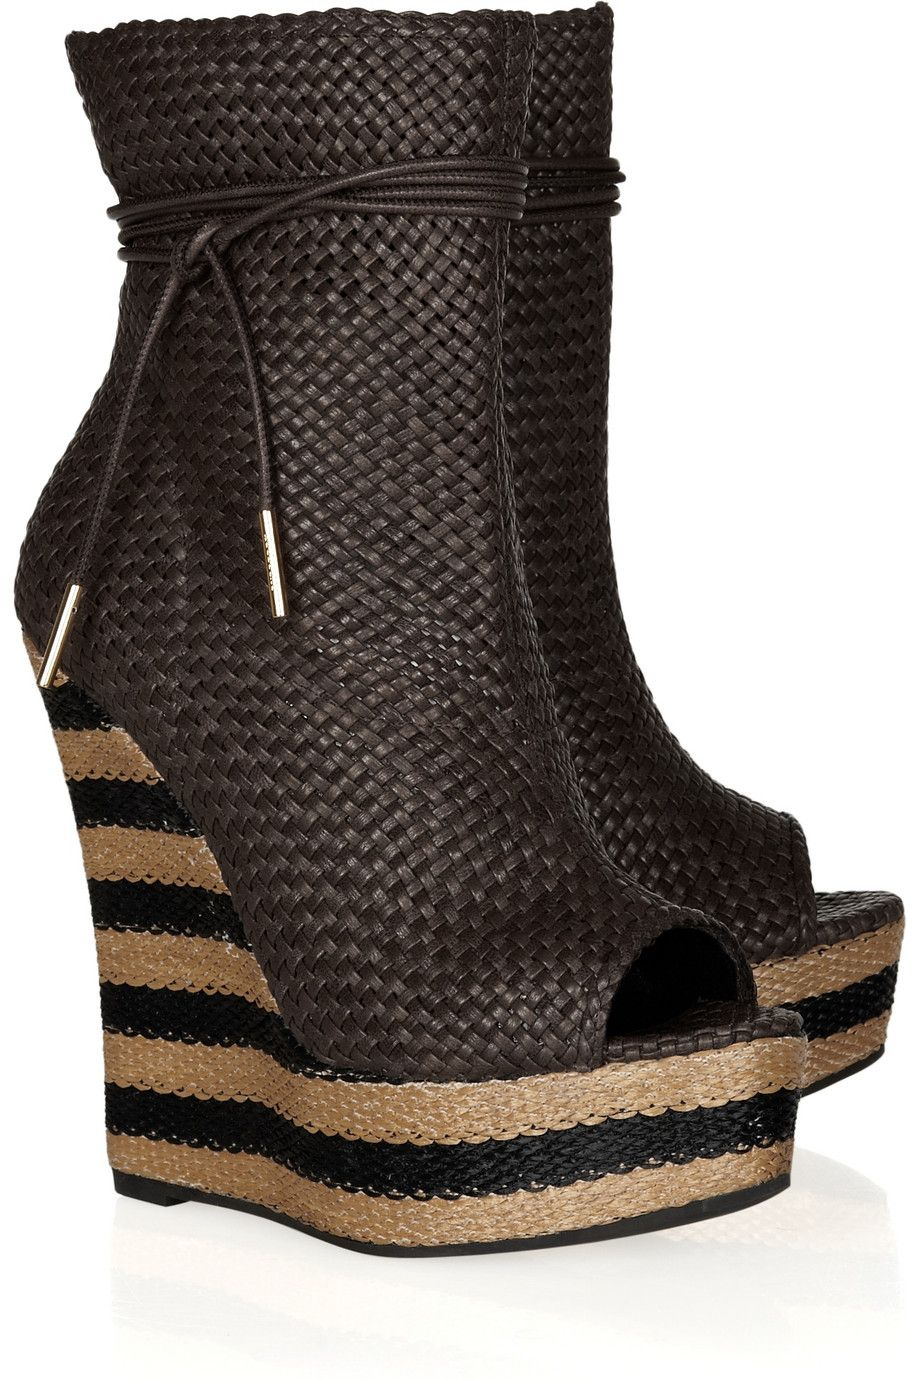 Burberry Woven Platform Sandals buy cheap for nice clearance professional cheap 2014 newest S79lTeq6j